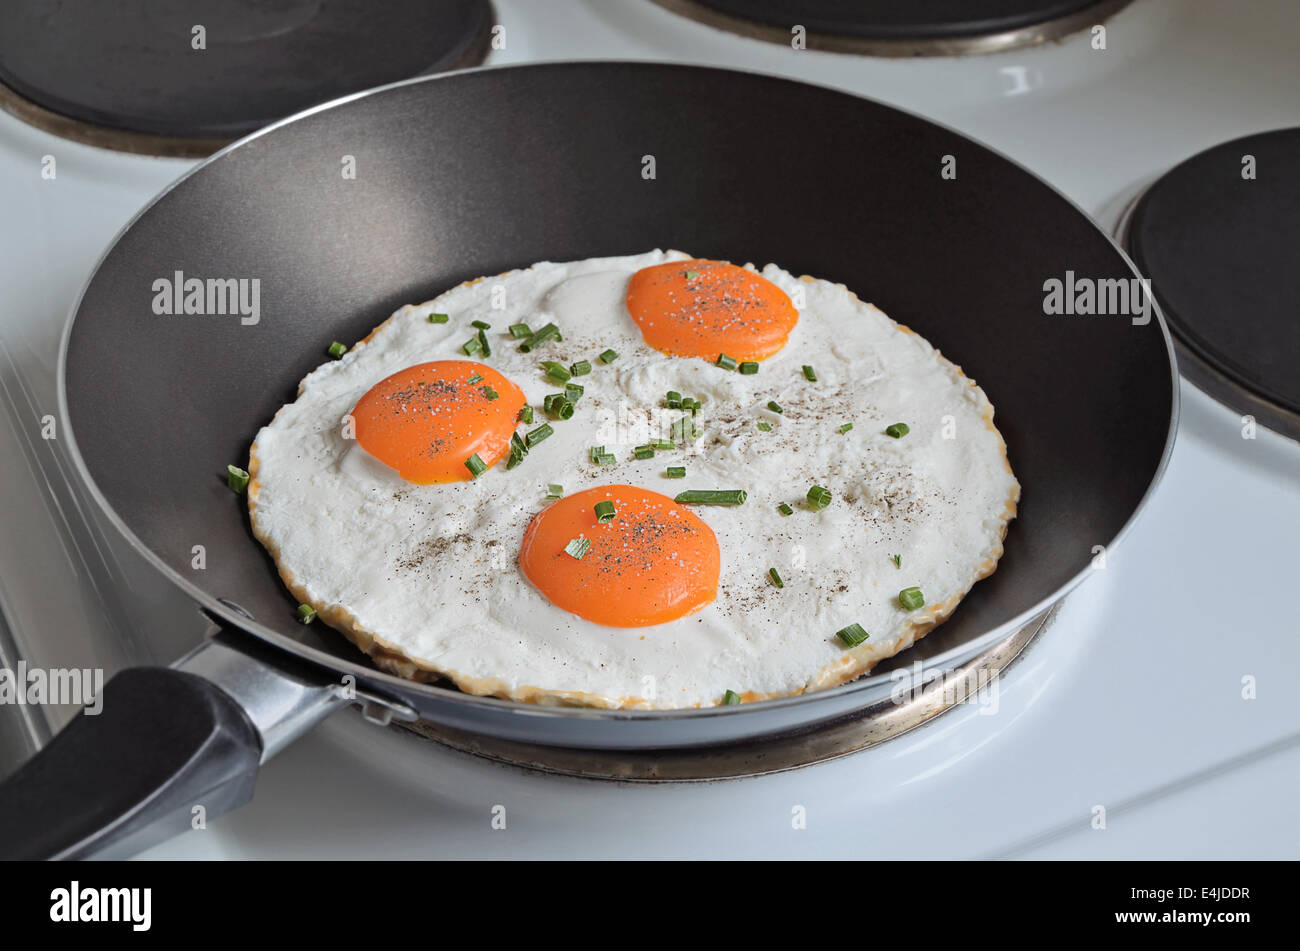 fried eggs with three yolks and chive in a frying pan, close up - Stock Image